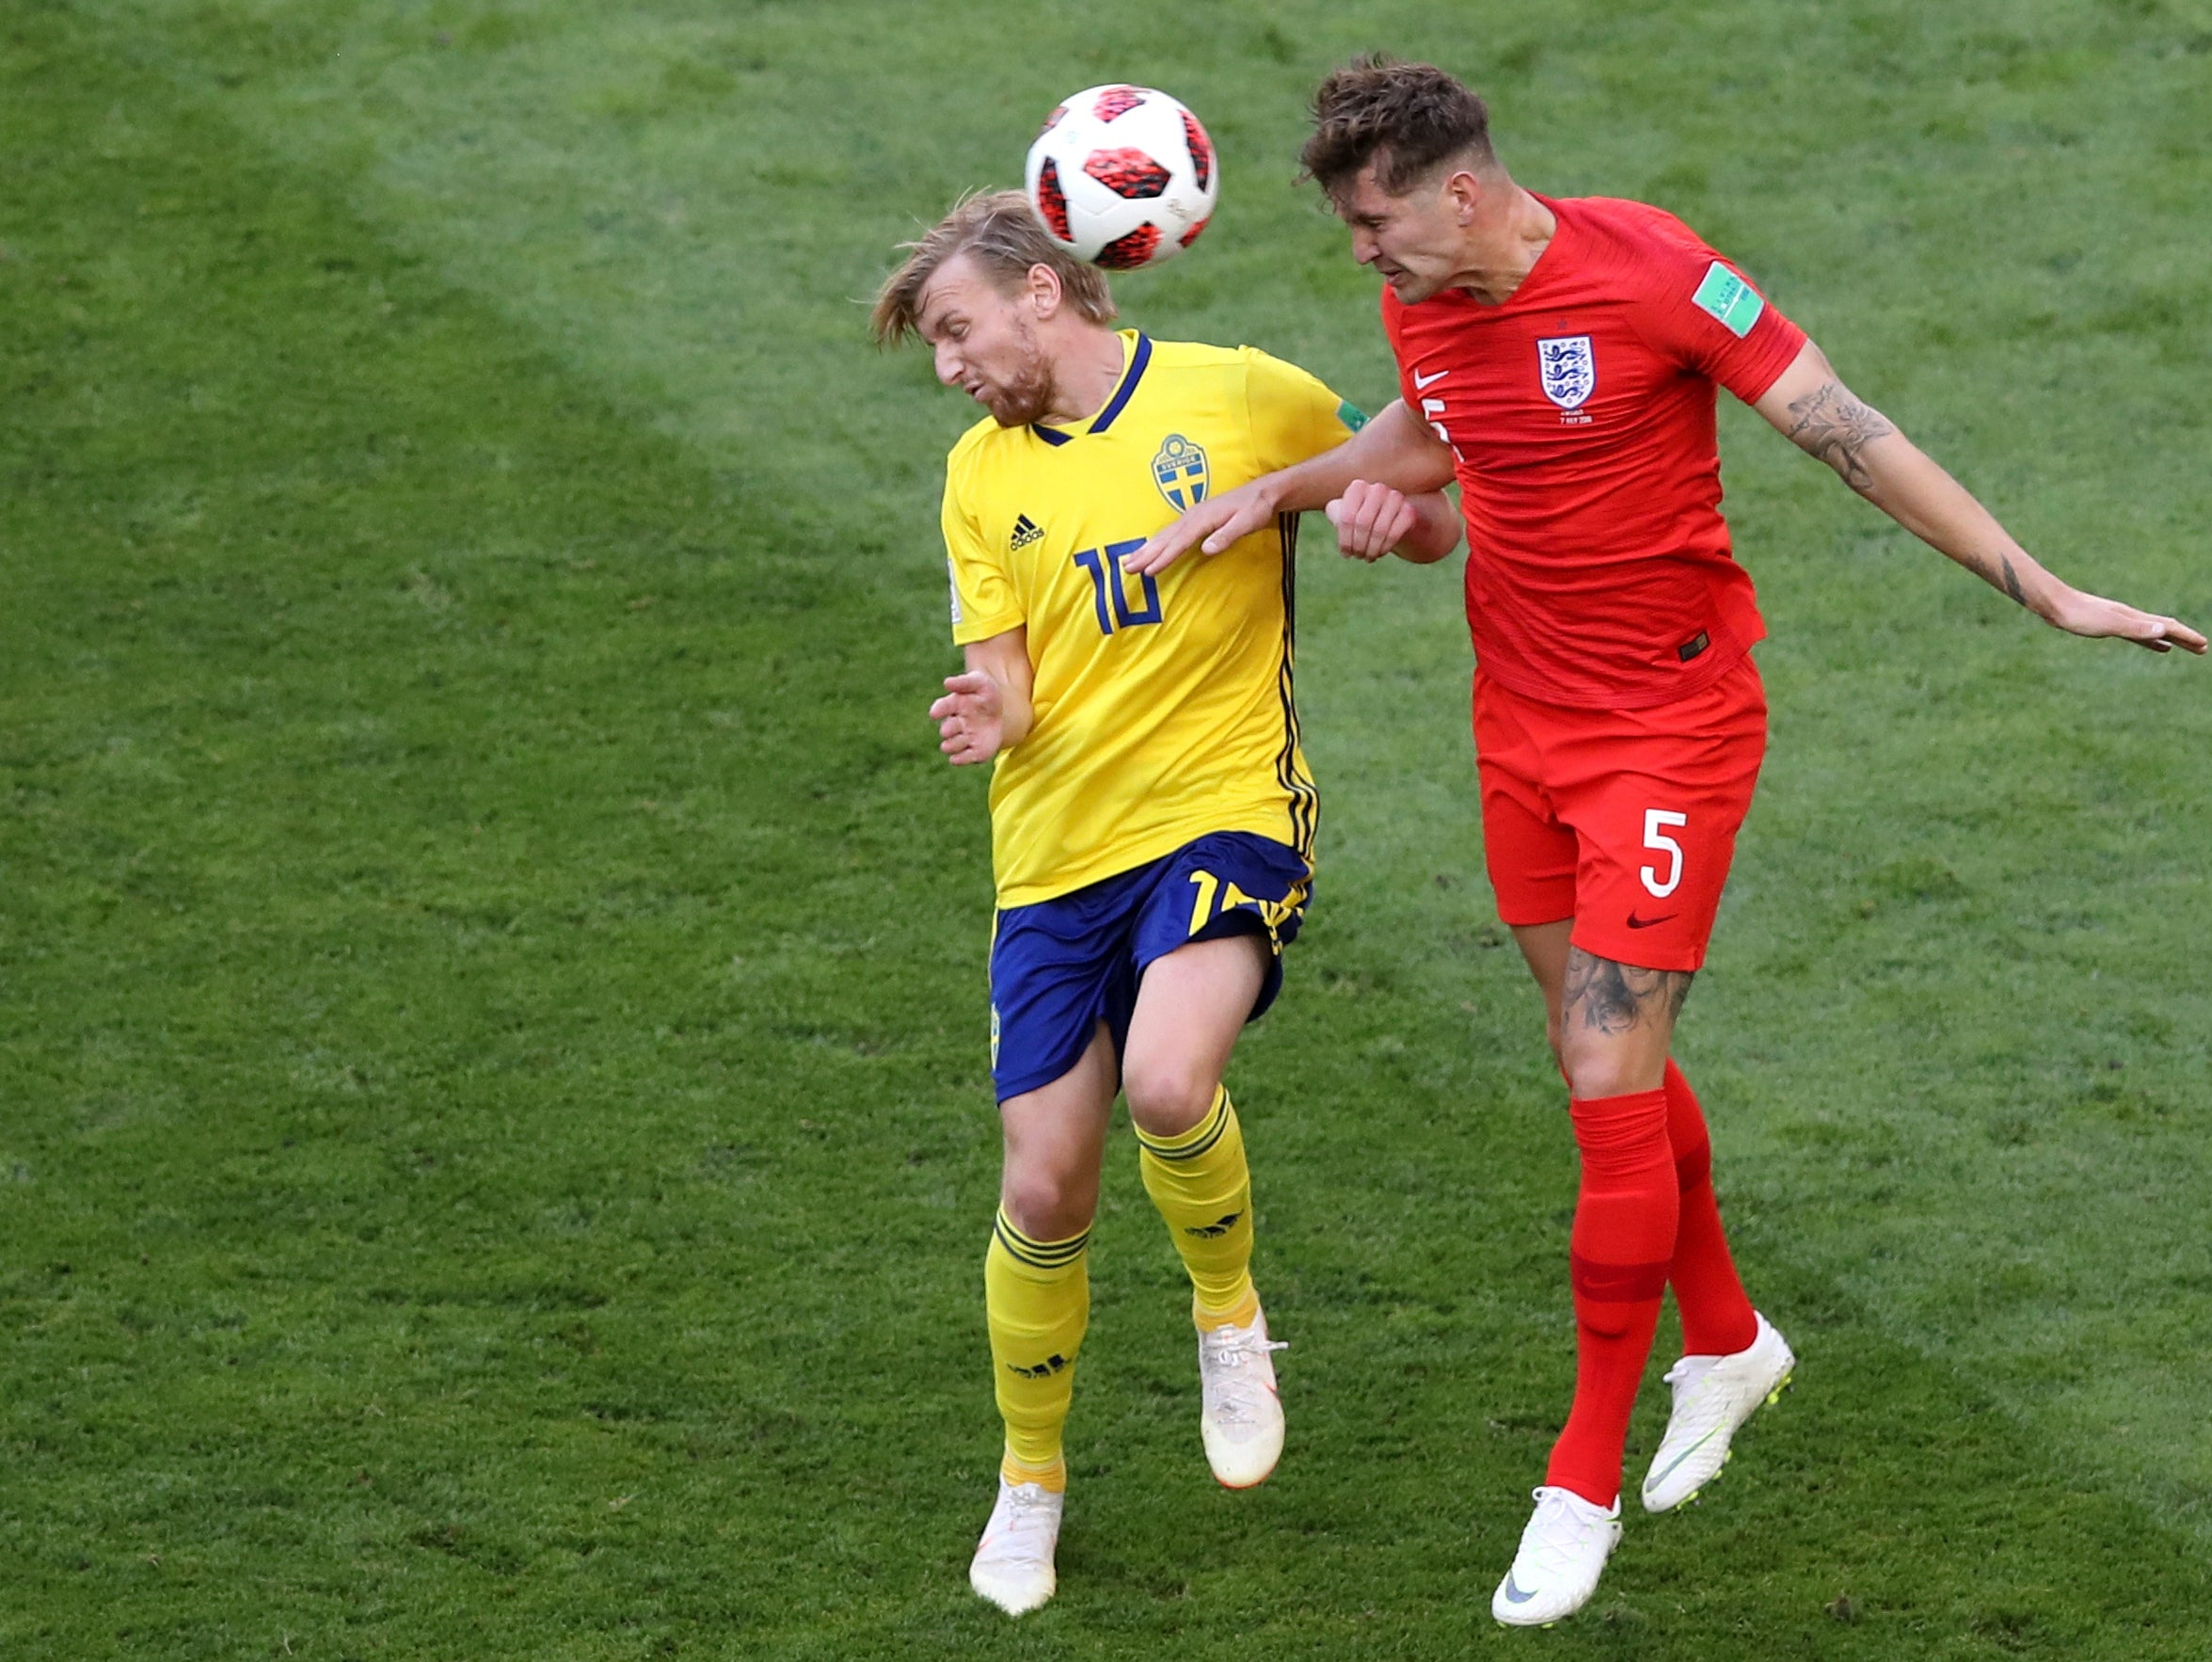 Football's Coming Home: Three Lions tops Spotify charts